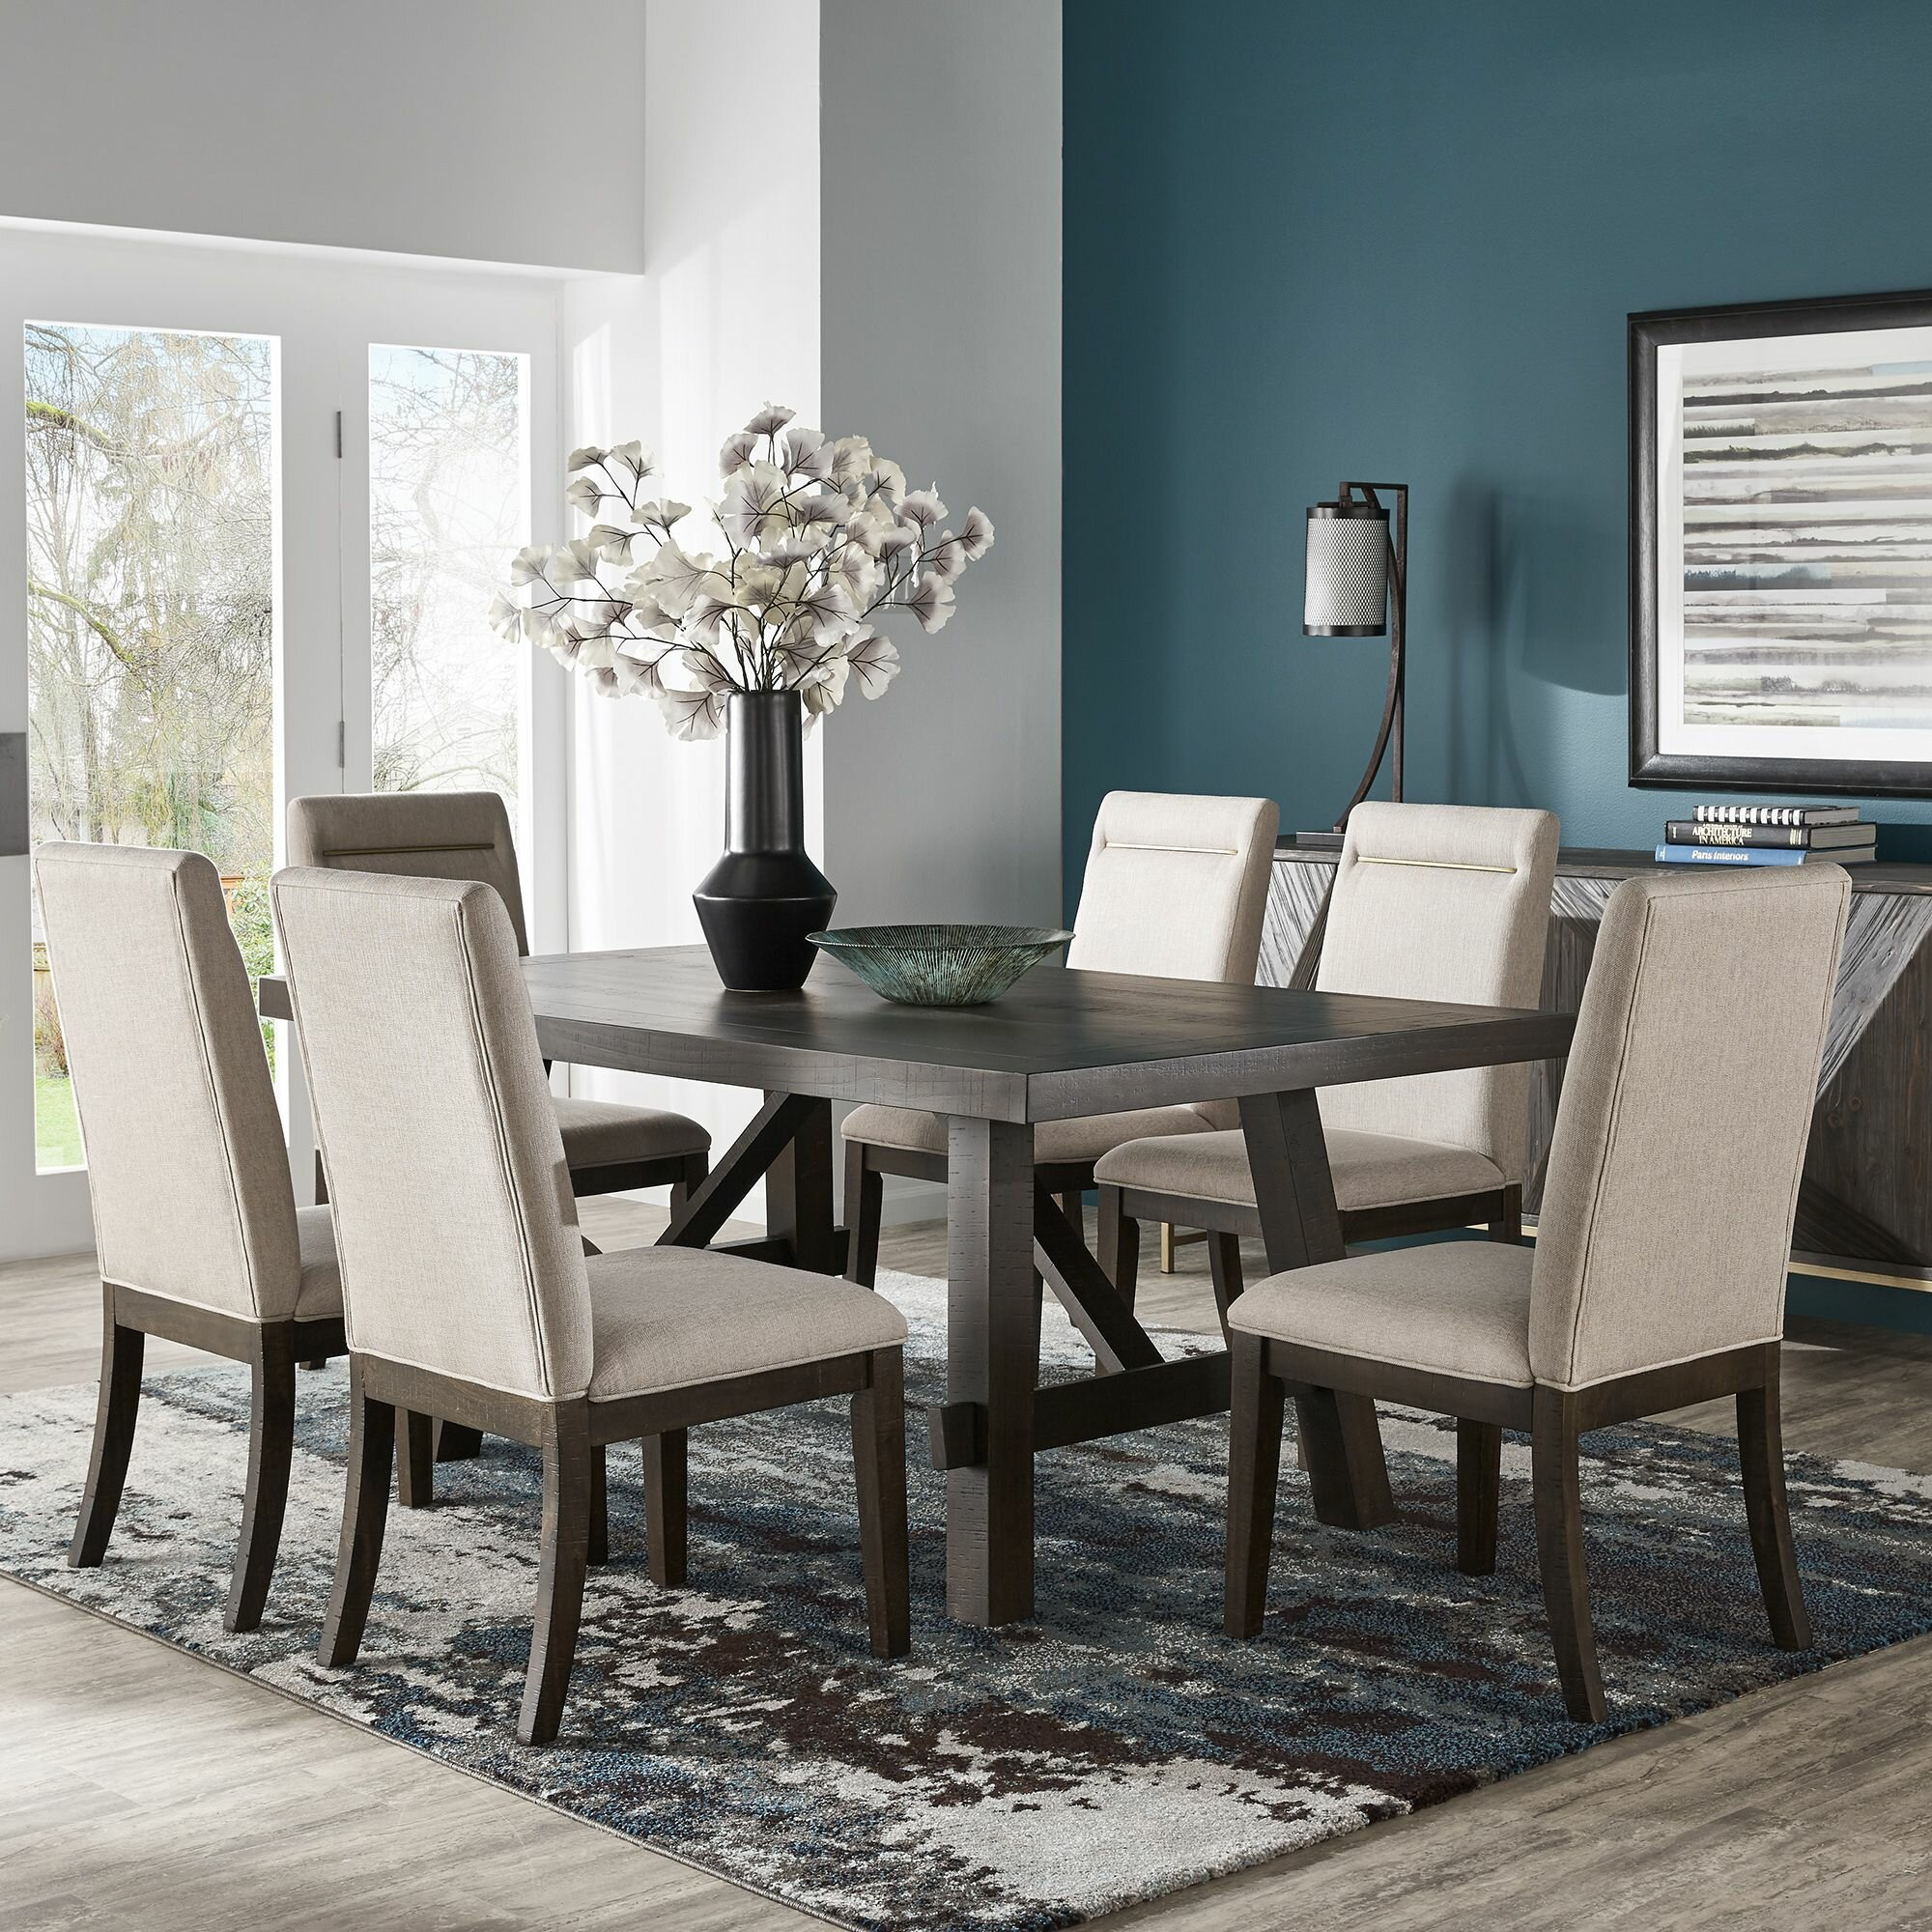 Gracie Oaks Labbe 7 Piece Dining Table